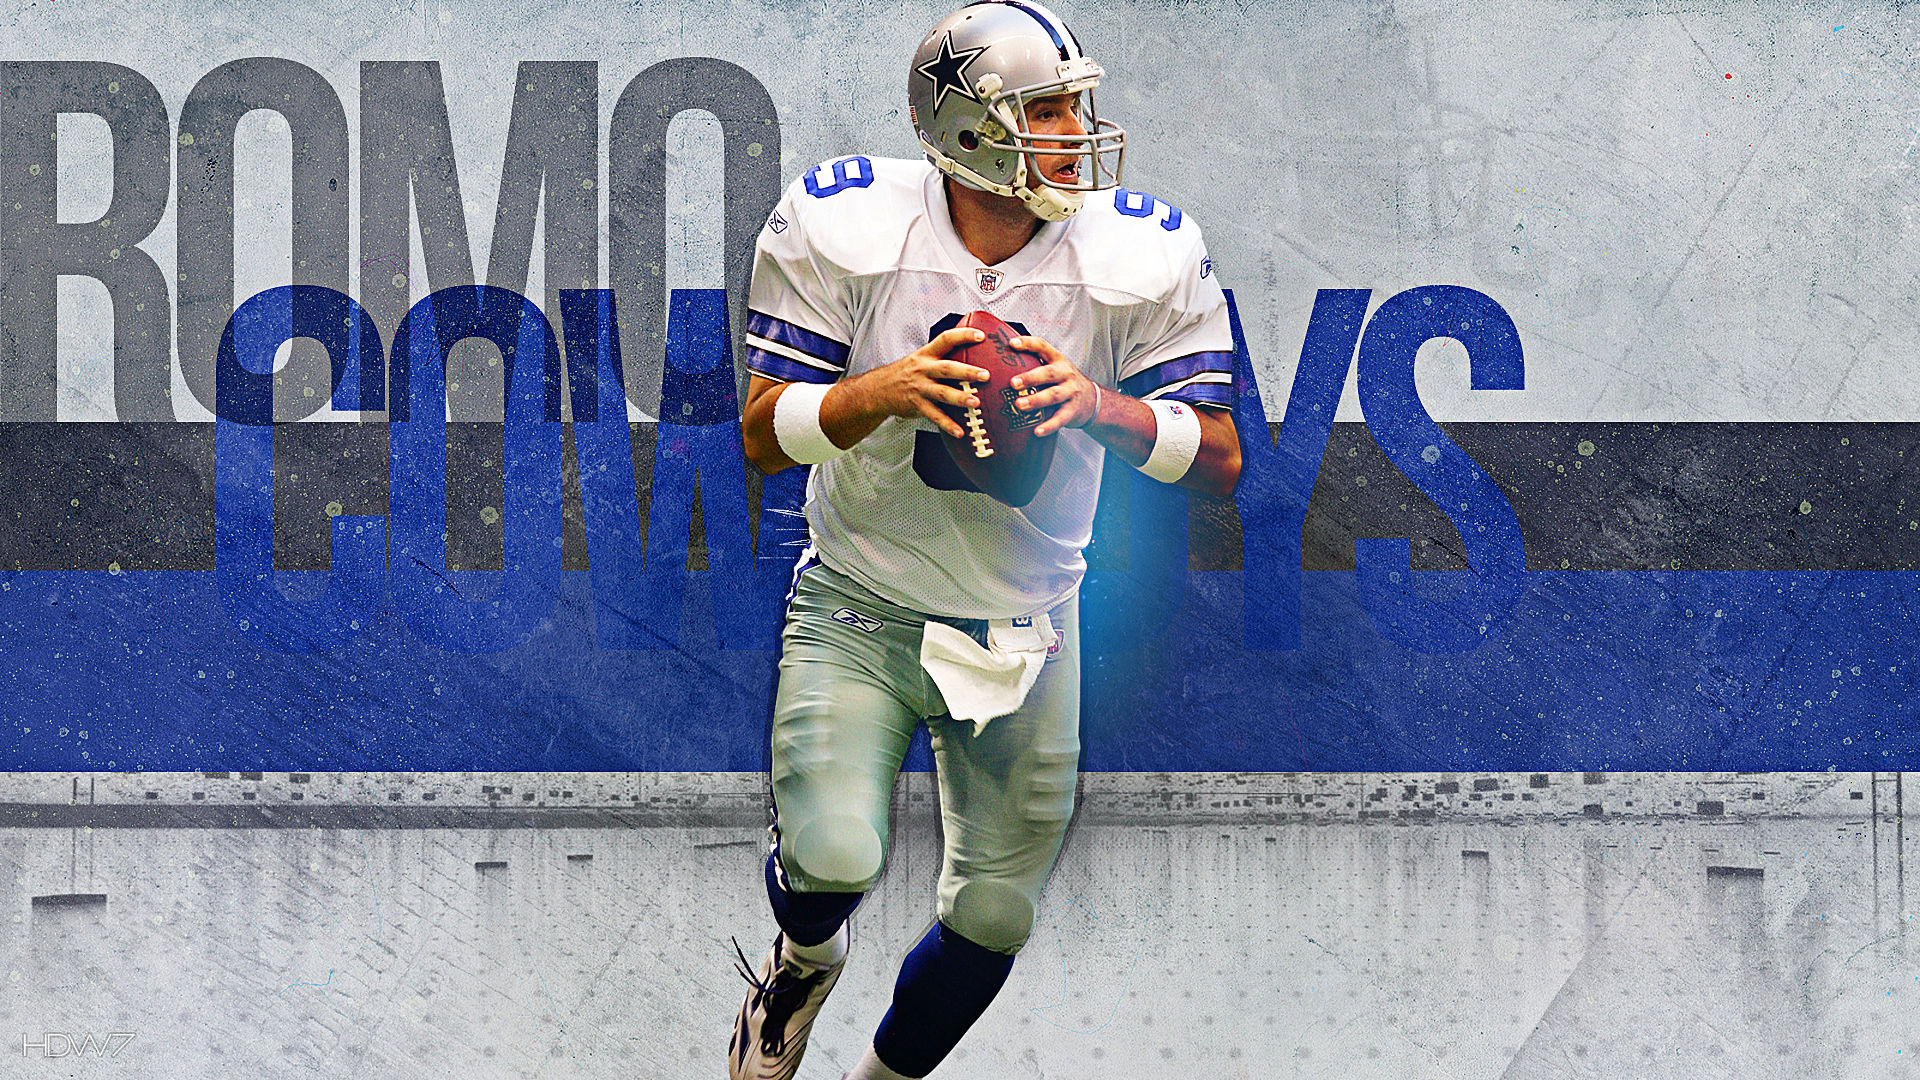 tony romo wallpaper background | HD